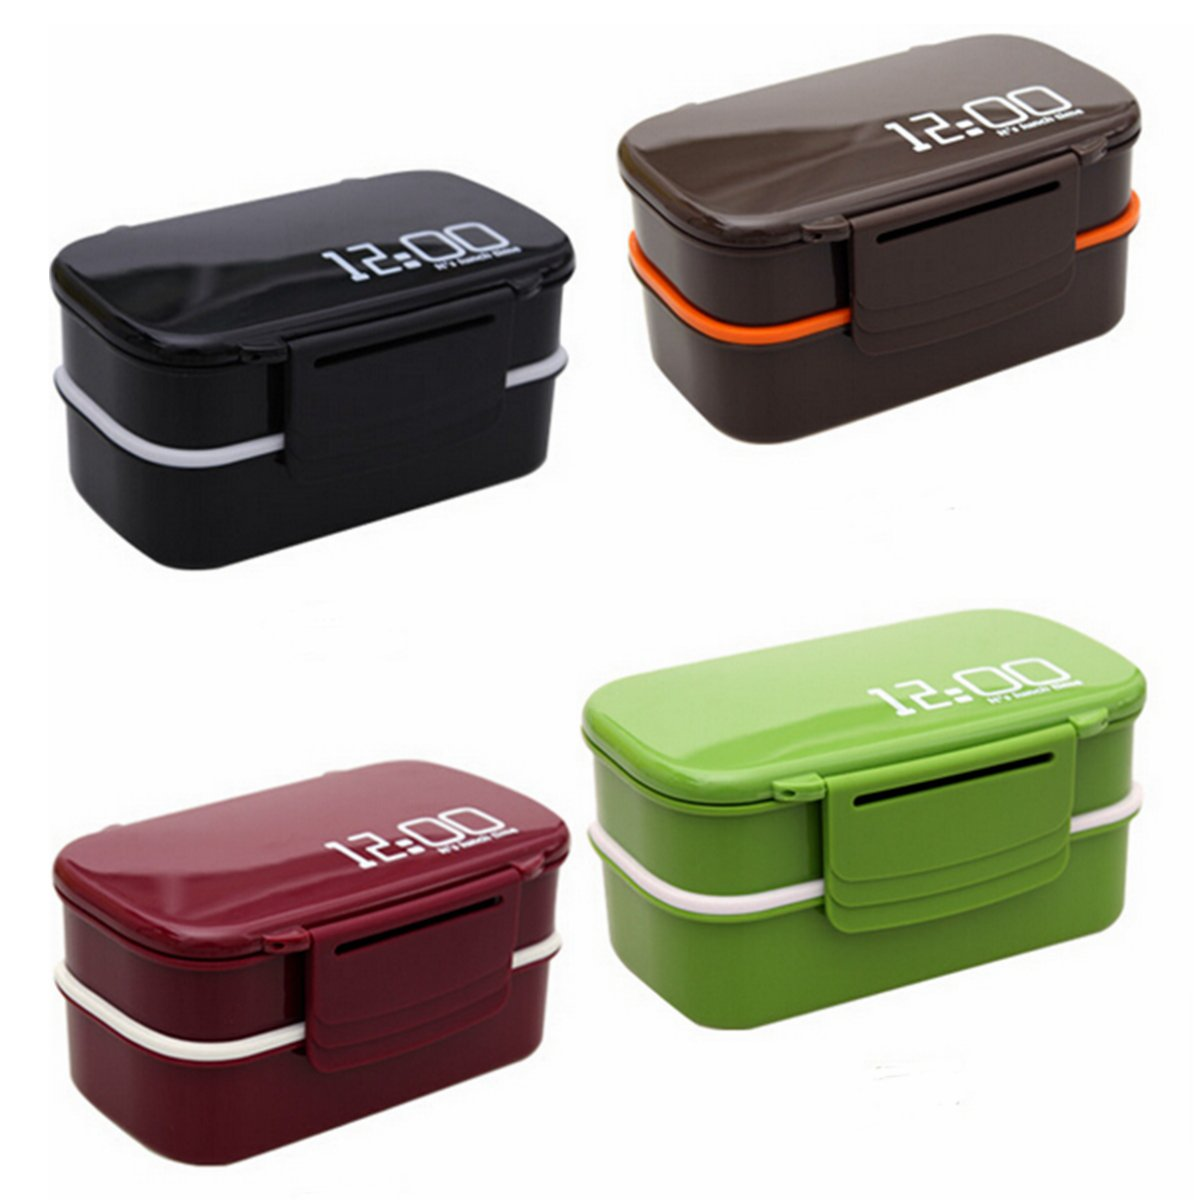 microwave plastic bento lunch box picnic food container large storage spoon fork. Black Bedroom Furniture Sets. Home Design Ideas